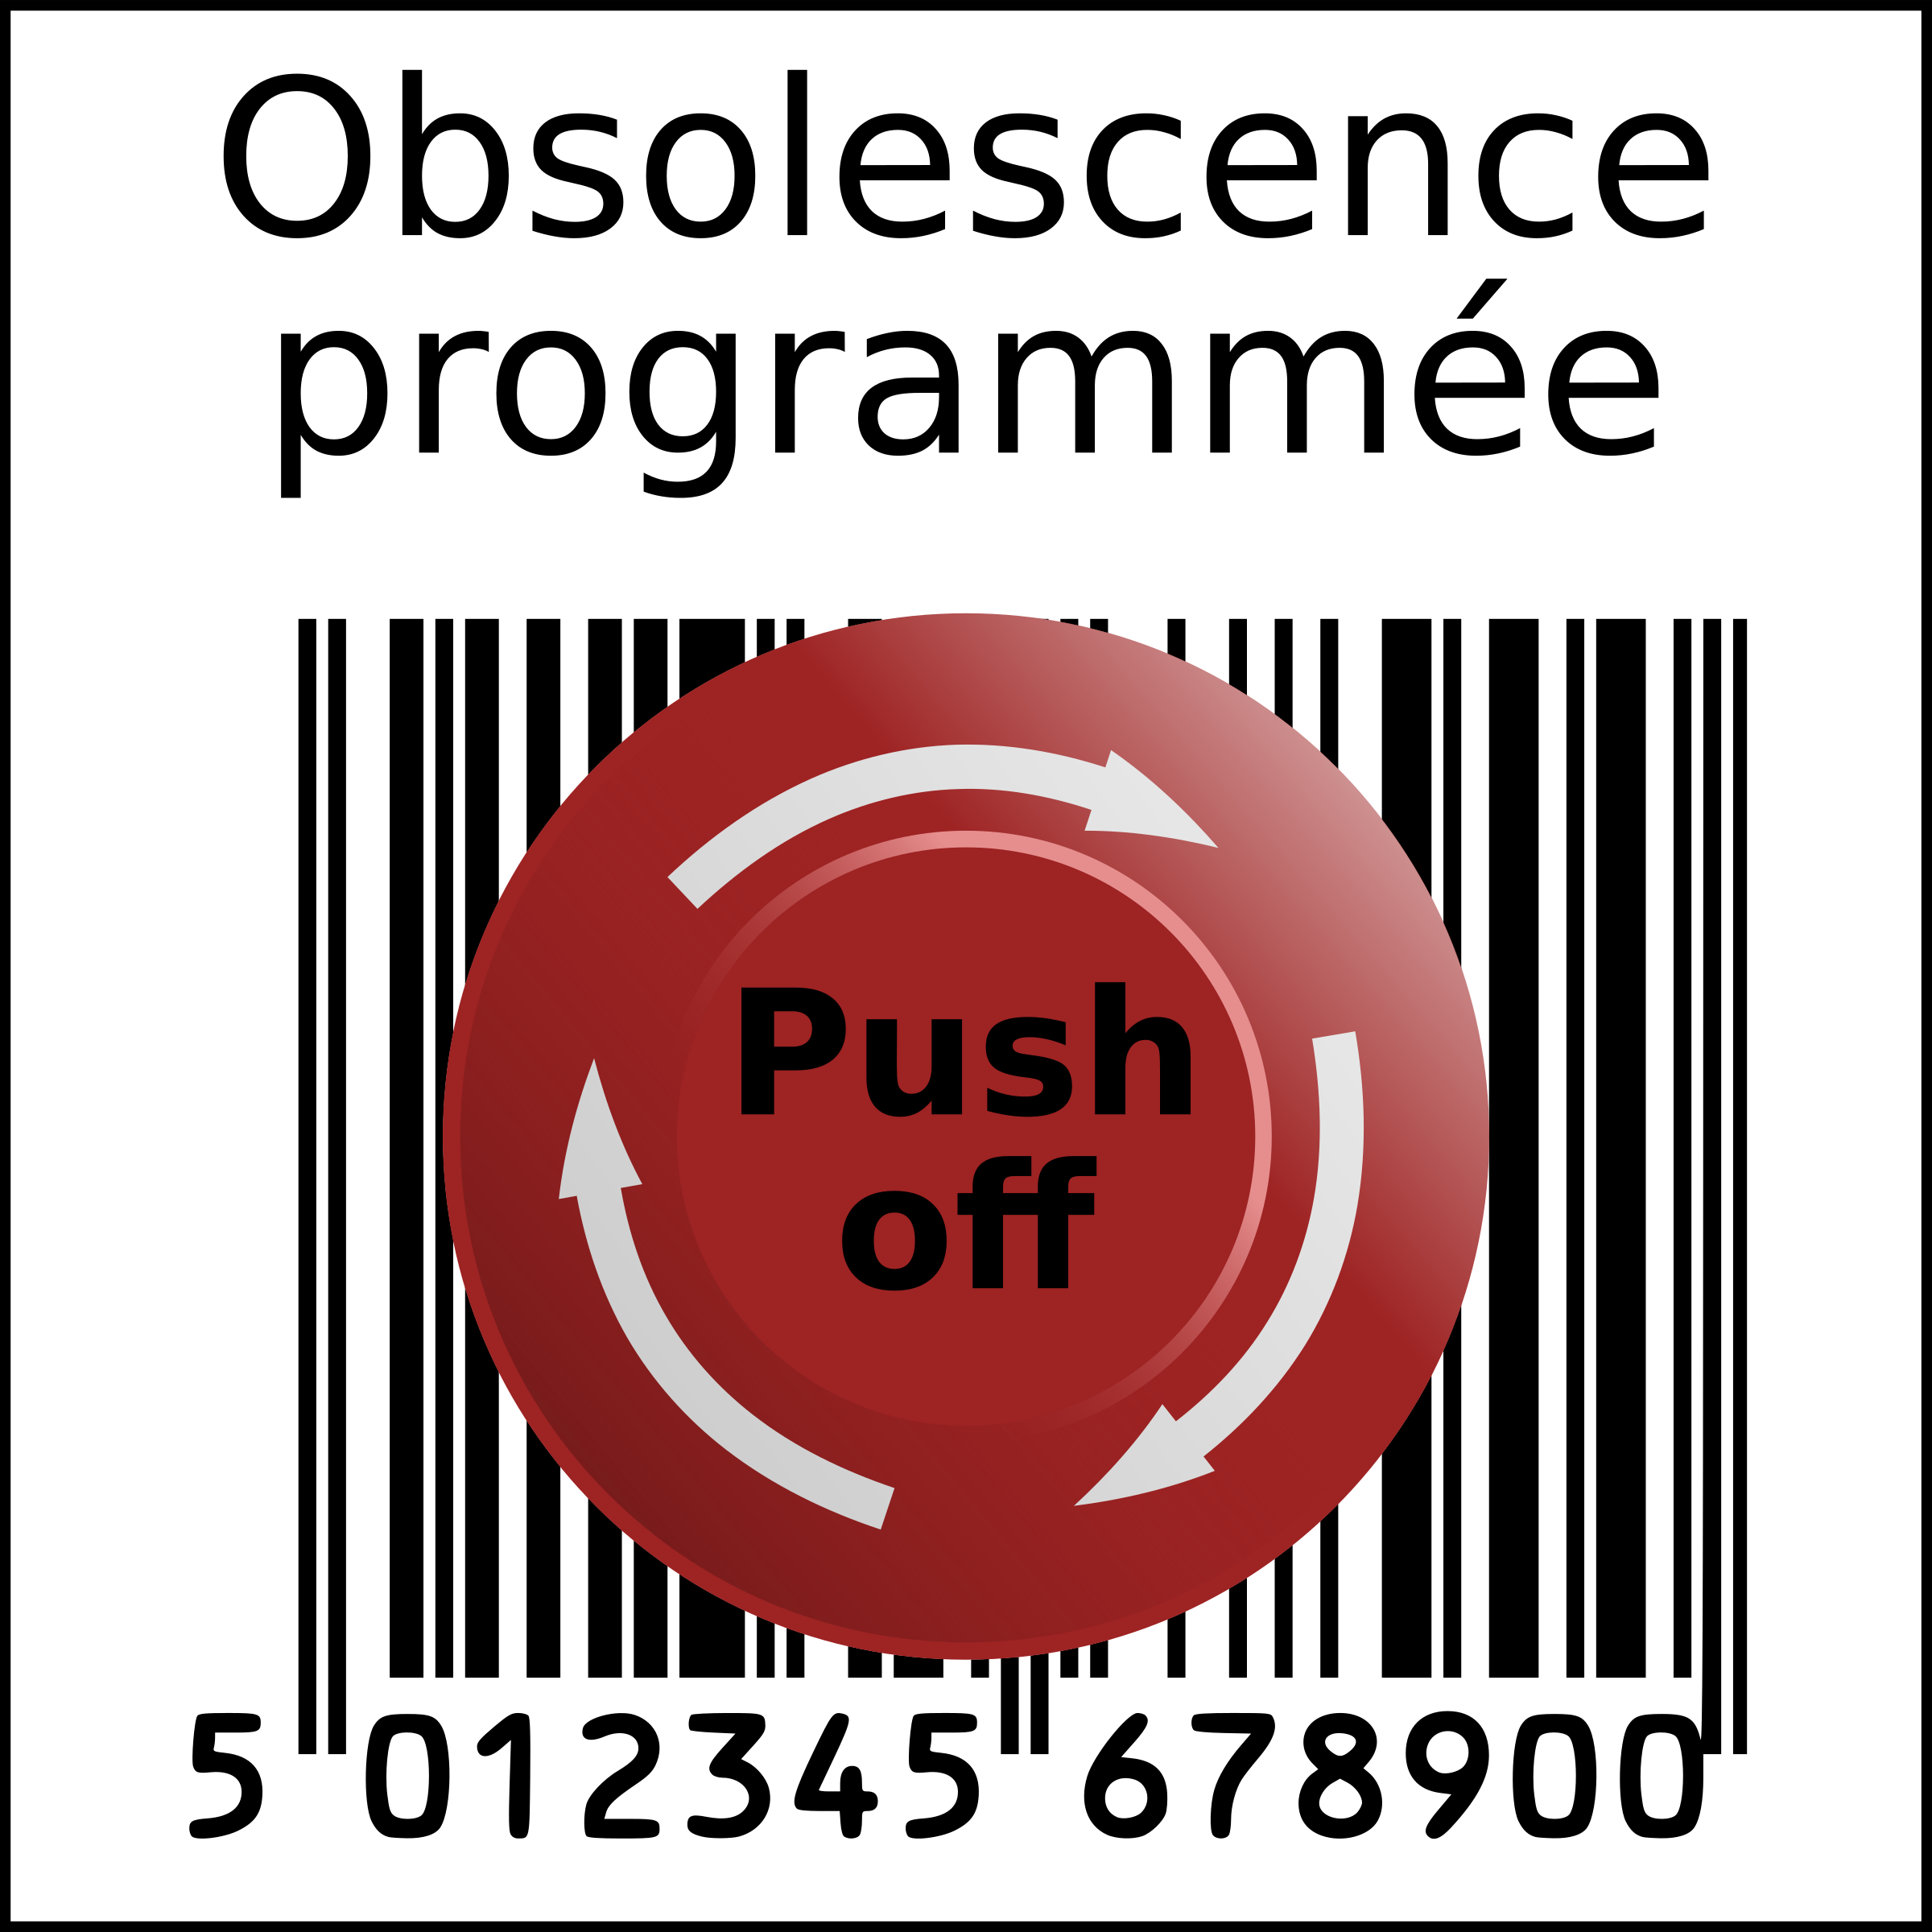 Planned obsolescence barcode in squarre with Emergency Push off button (French) by sodruls